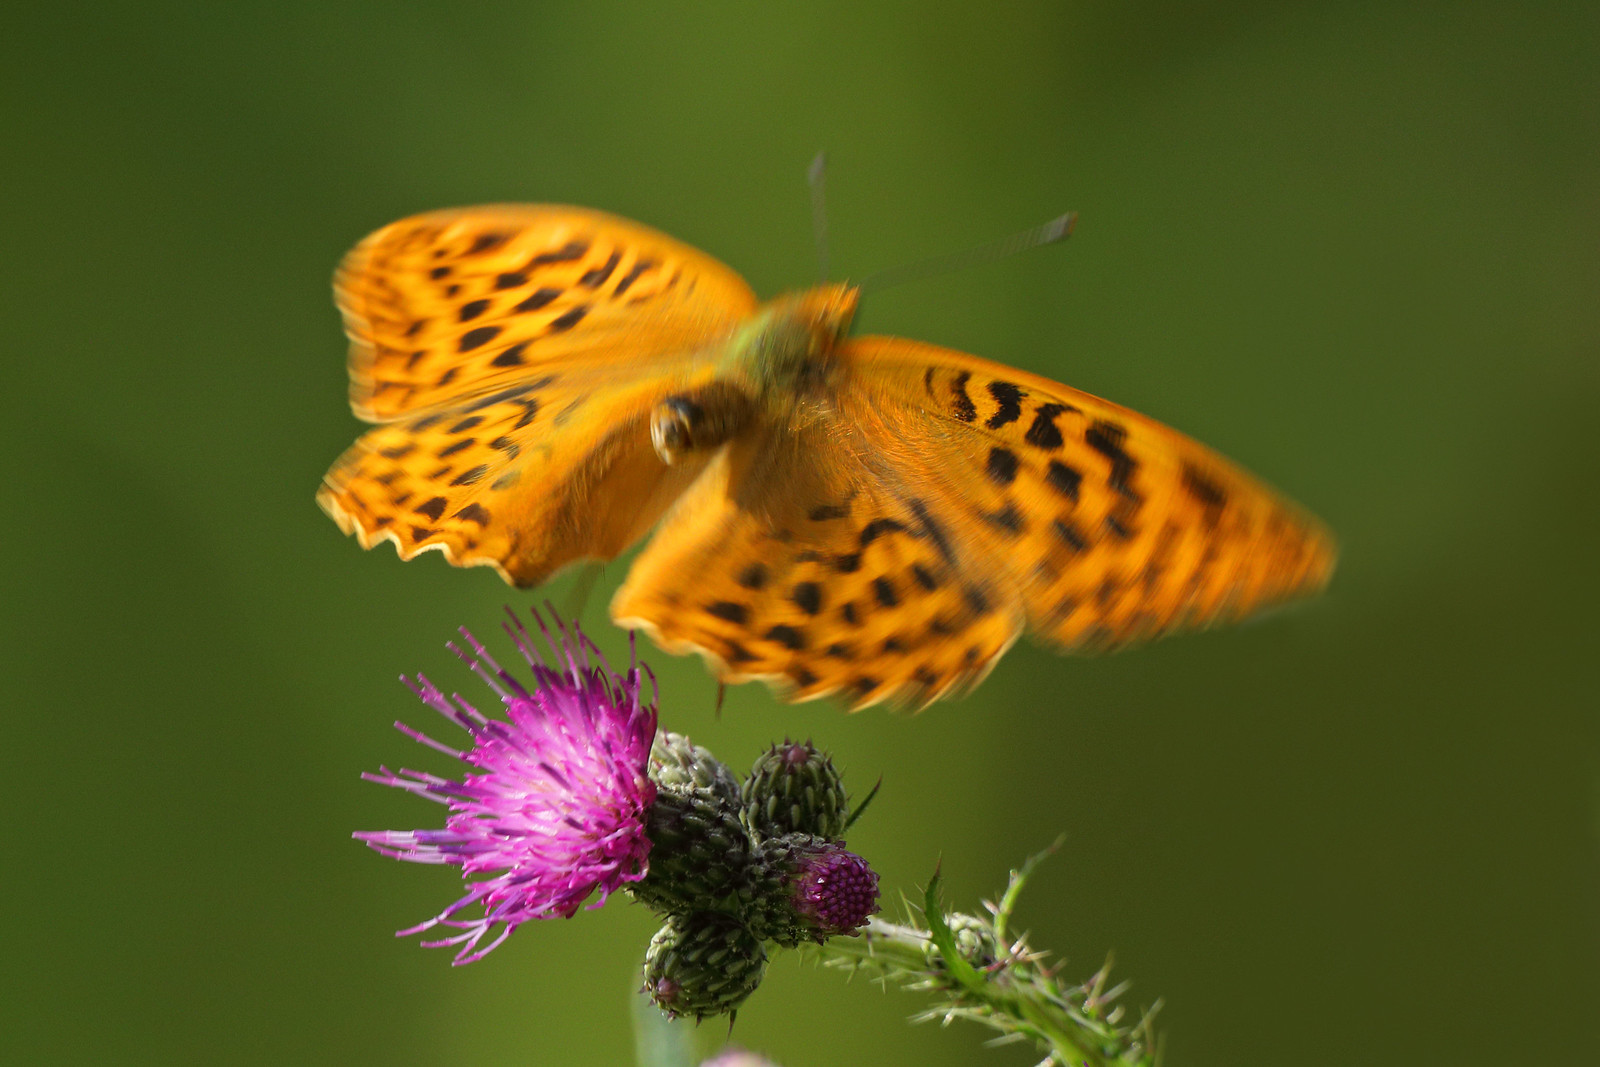 Silver Washed Fritillary in Flight